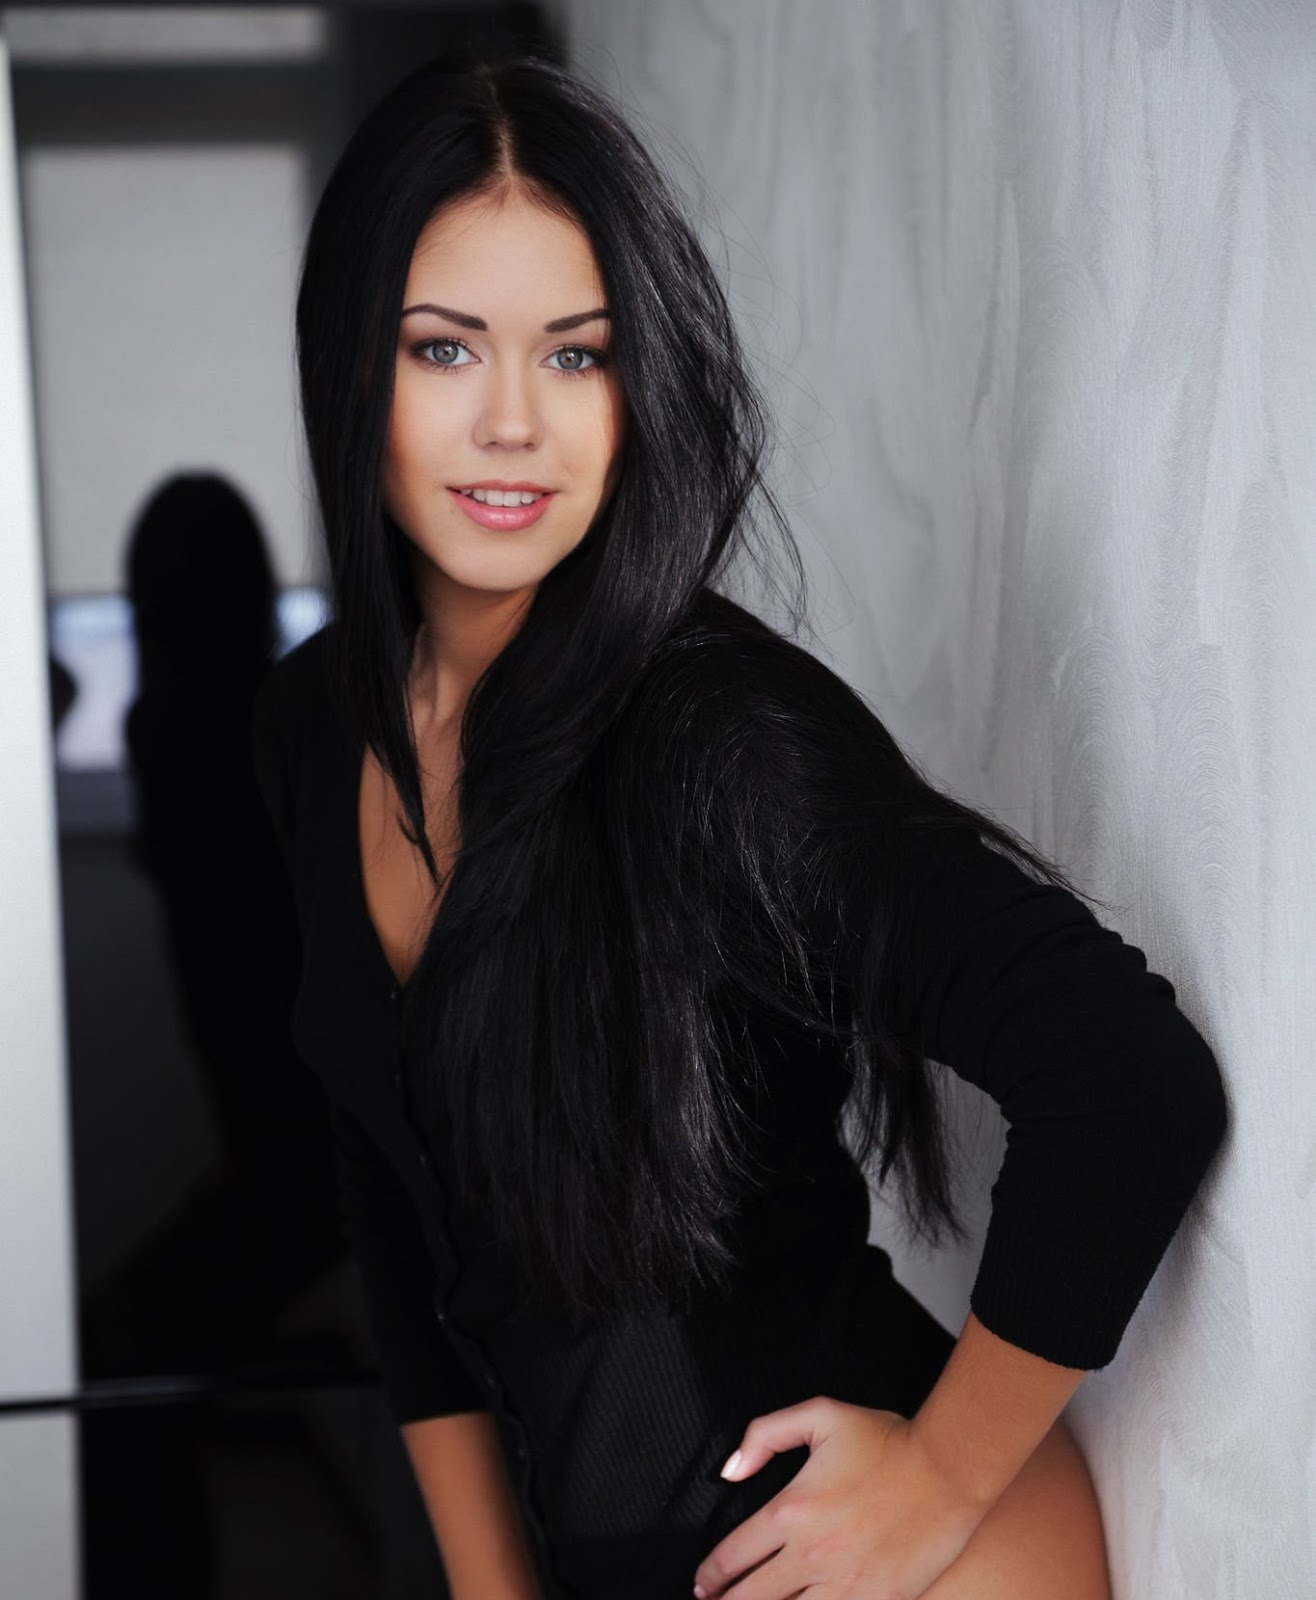 cheap escort service haugesund sex